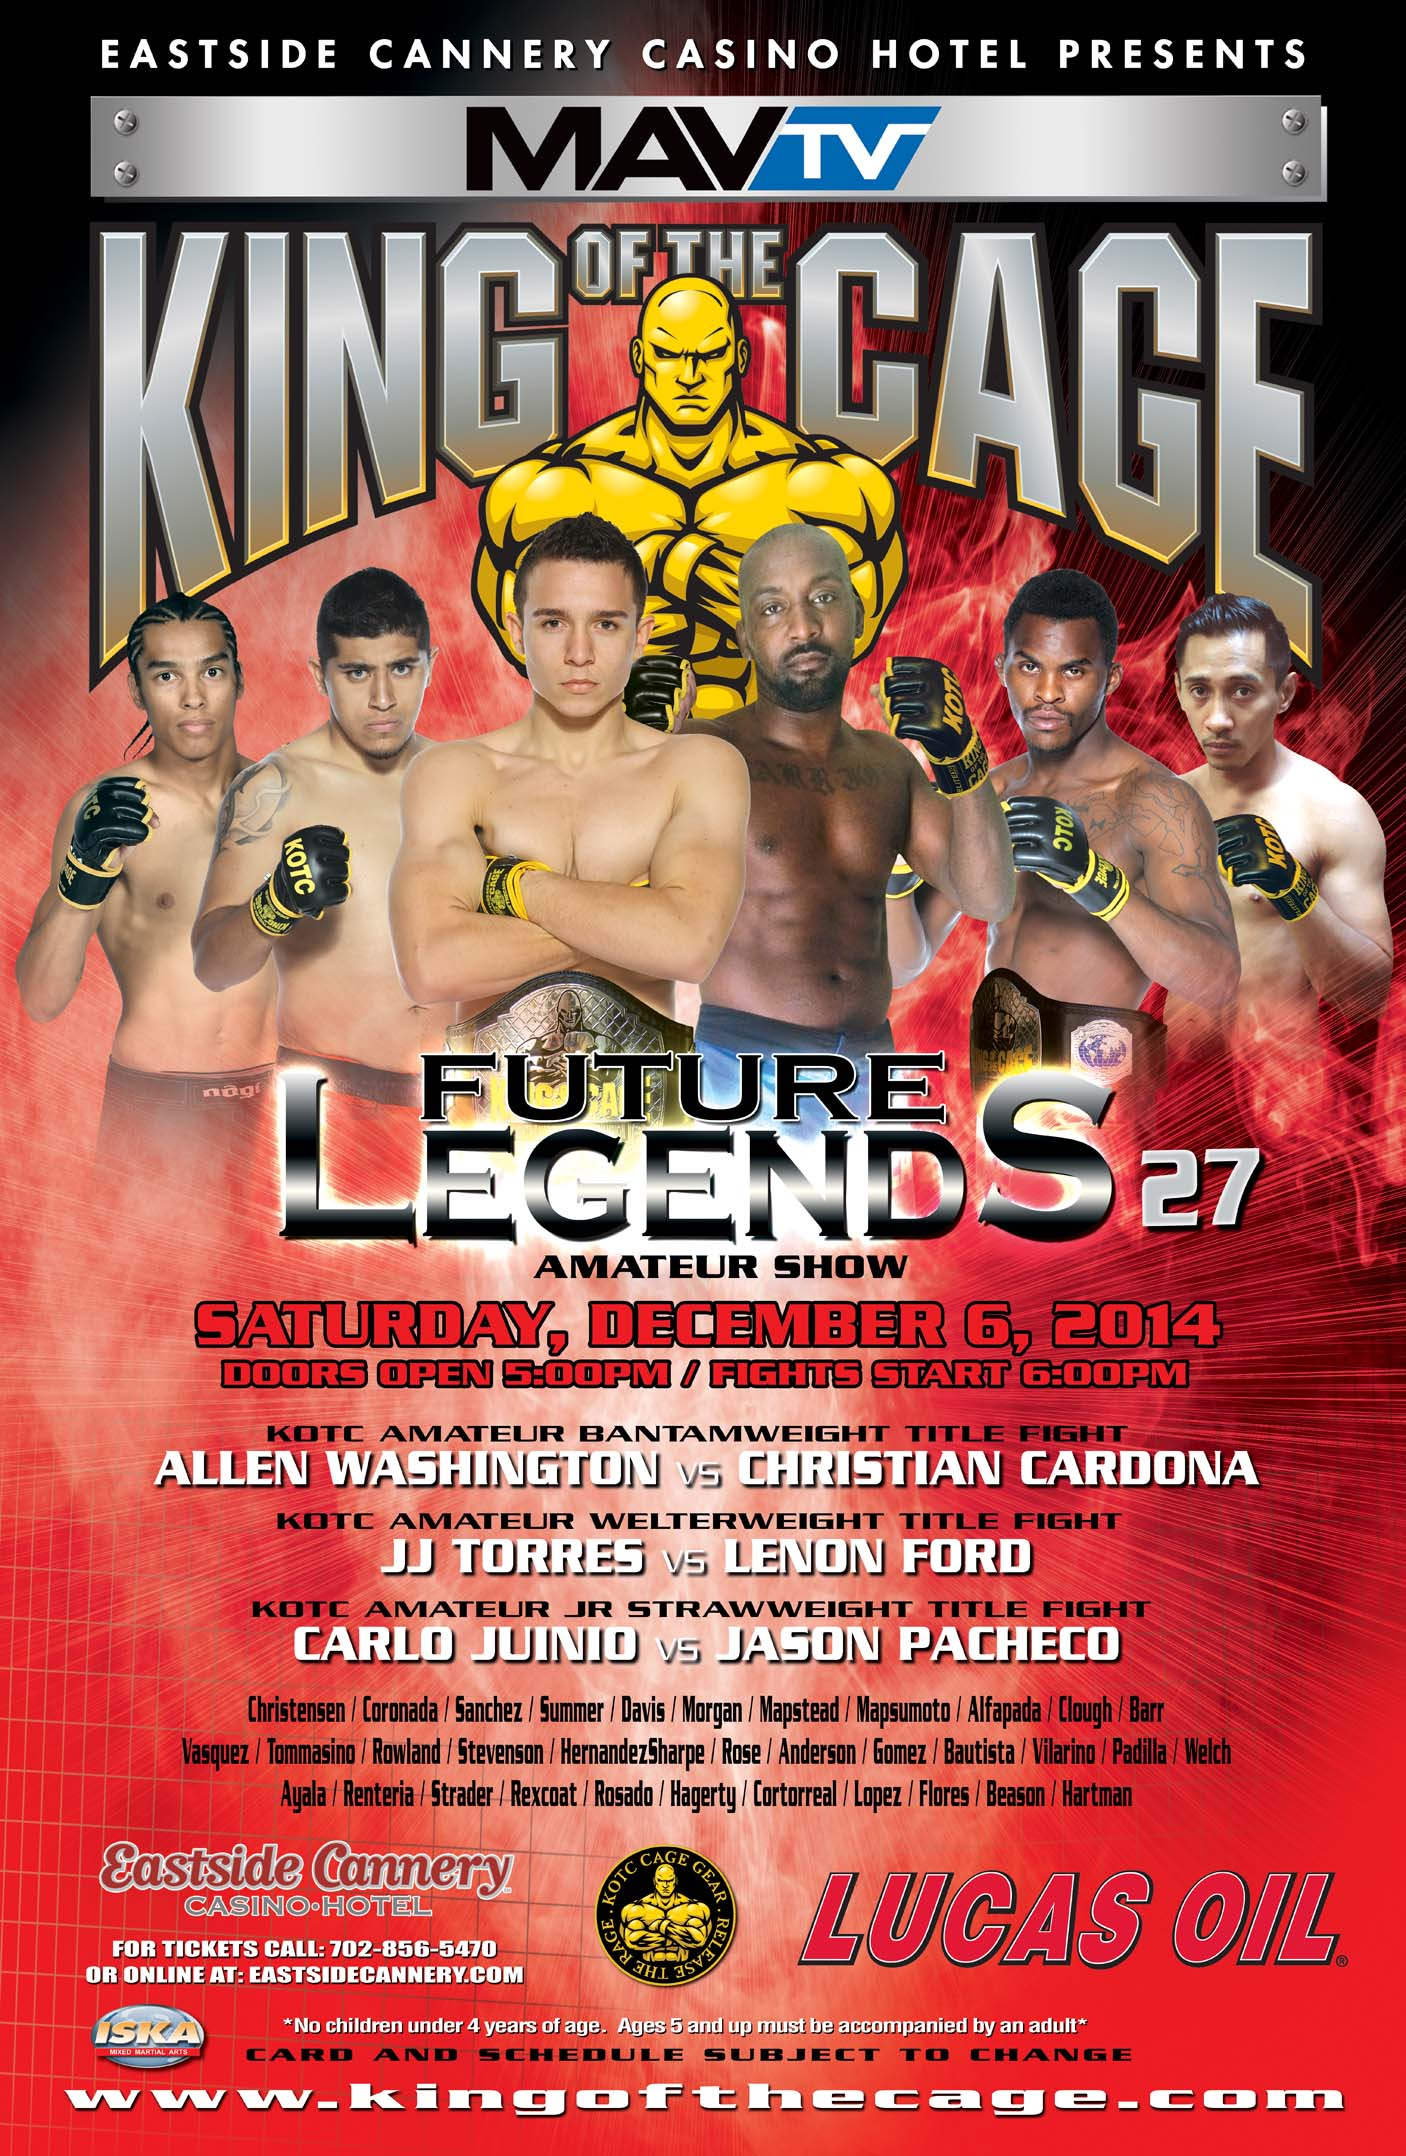 poster-futurelegends27